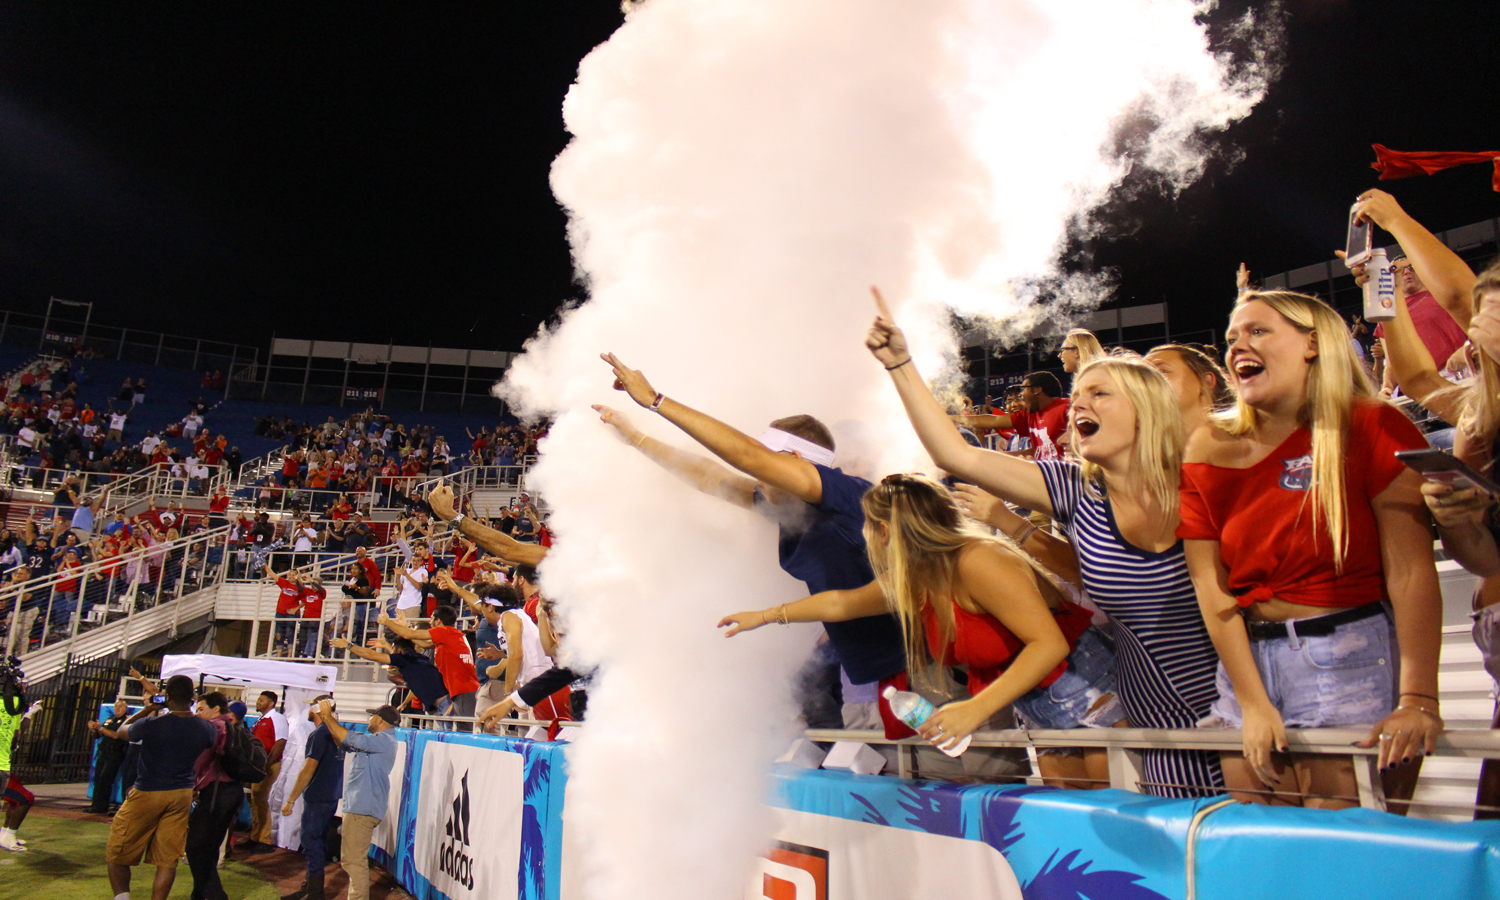 FAU fans cheer and scream through the smoke as FAU sophomore running back Devin Singletary (5) scores a touchdown. Matthew Quick   Contributing Photographer